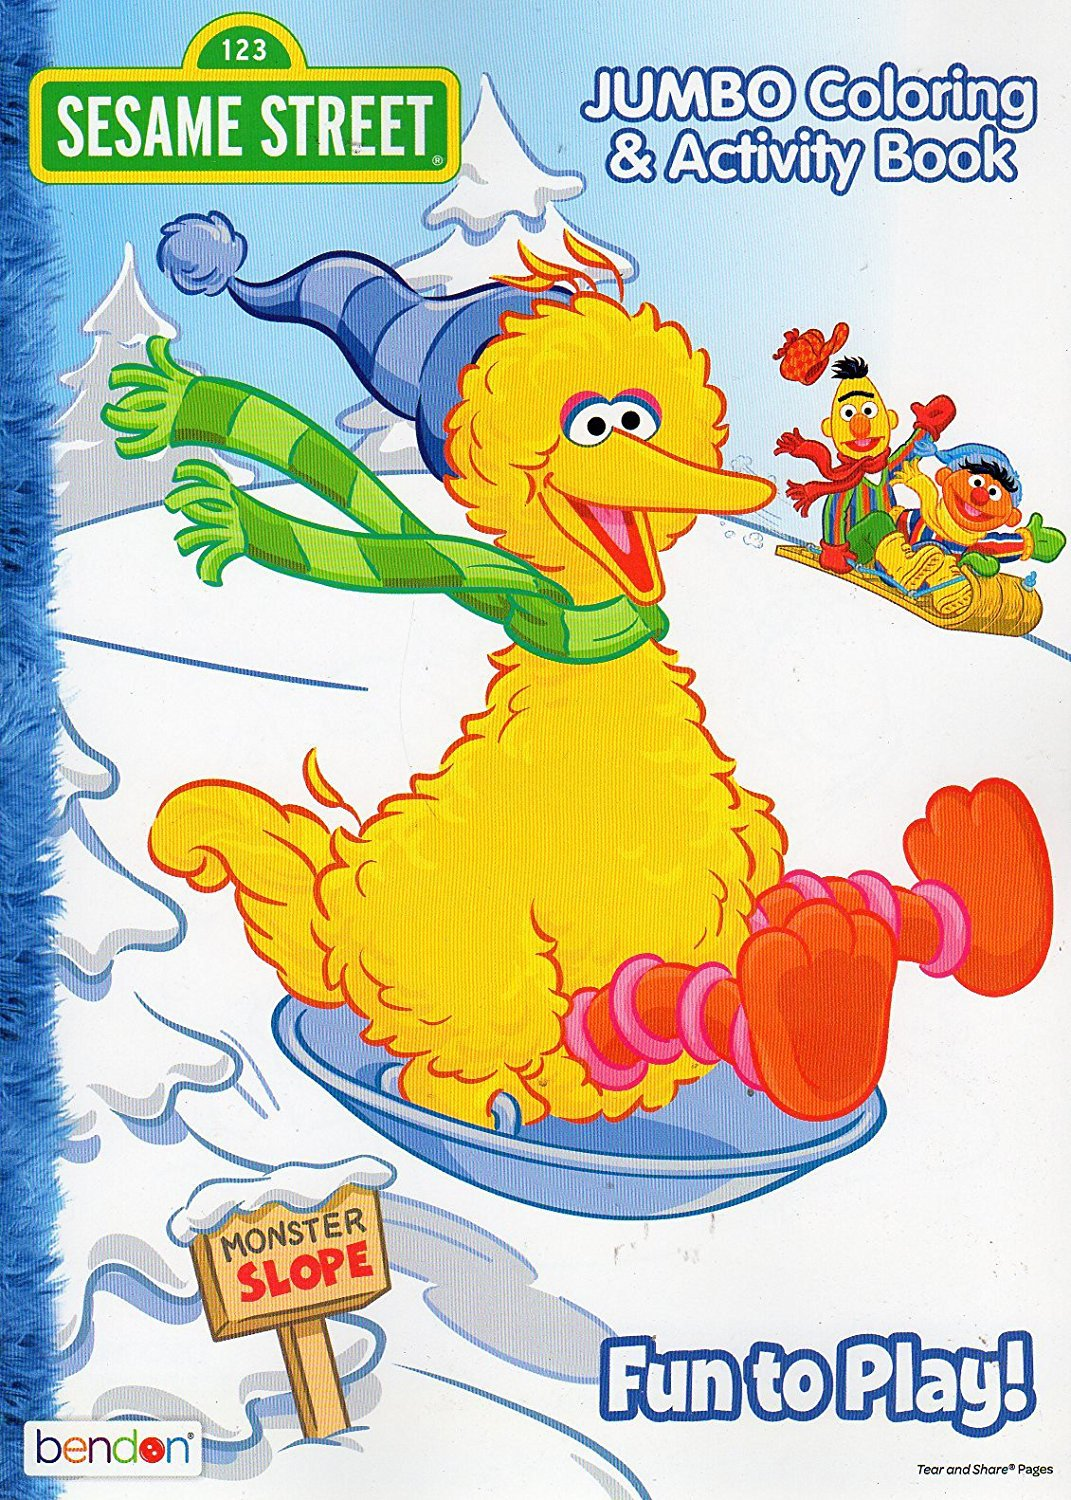 Christmas Holiday - Sesame Street - Fun to Play! - JUMBO Coloring & activity Book for Kids